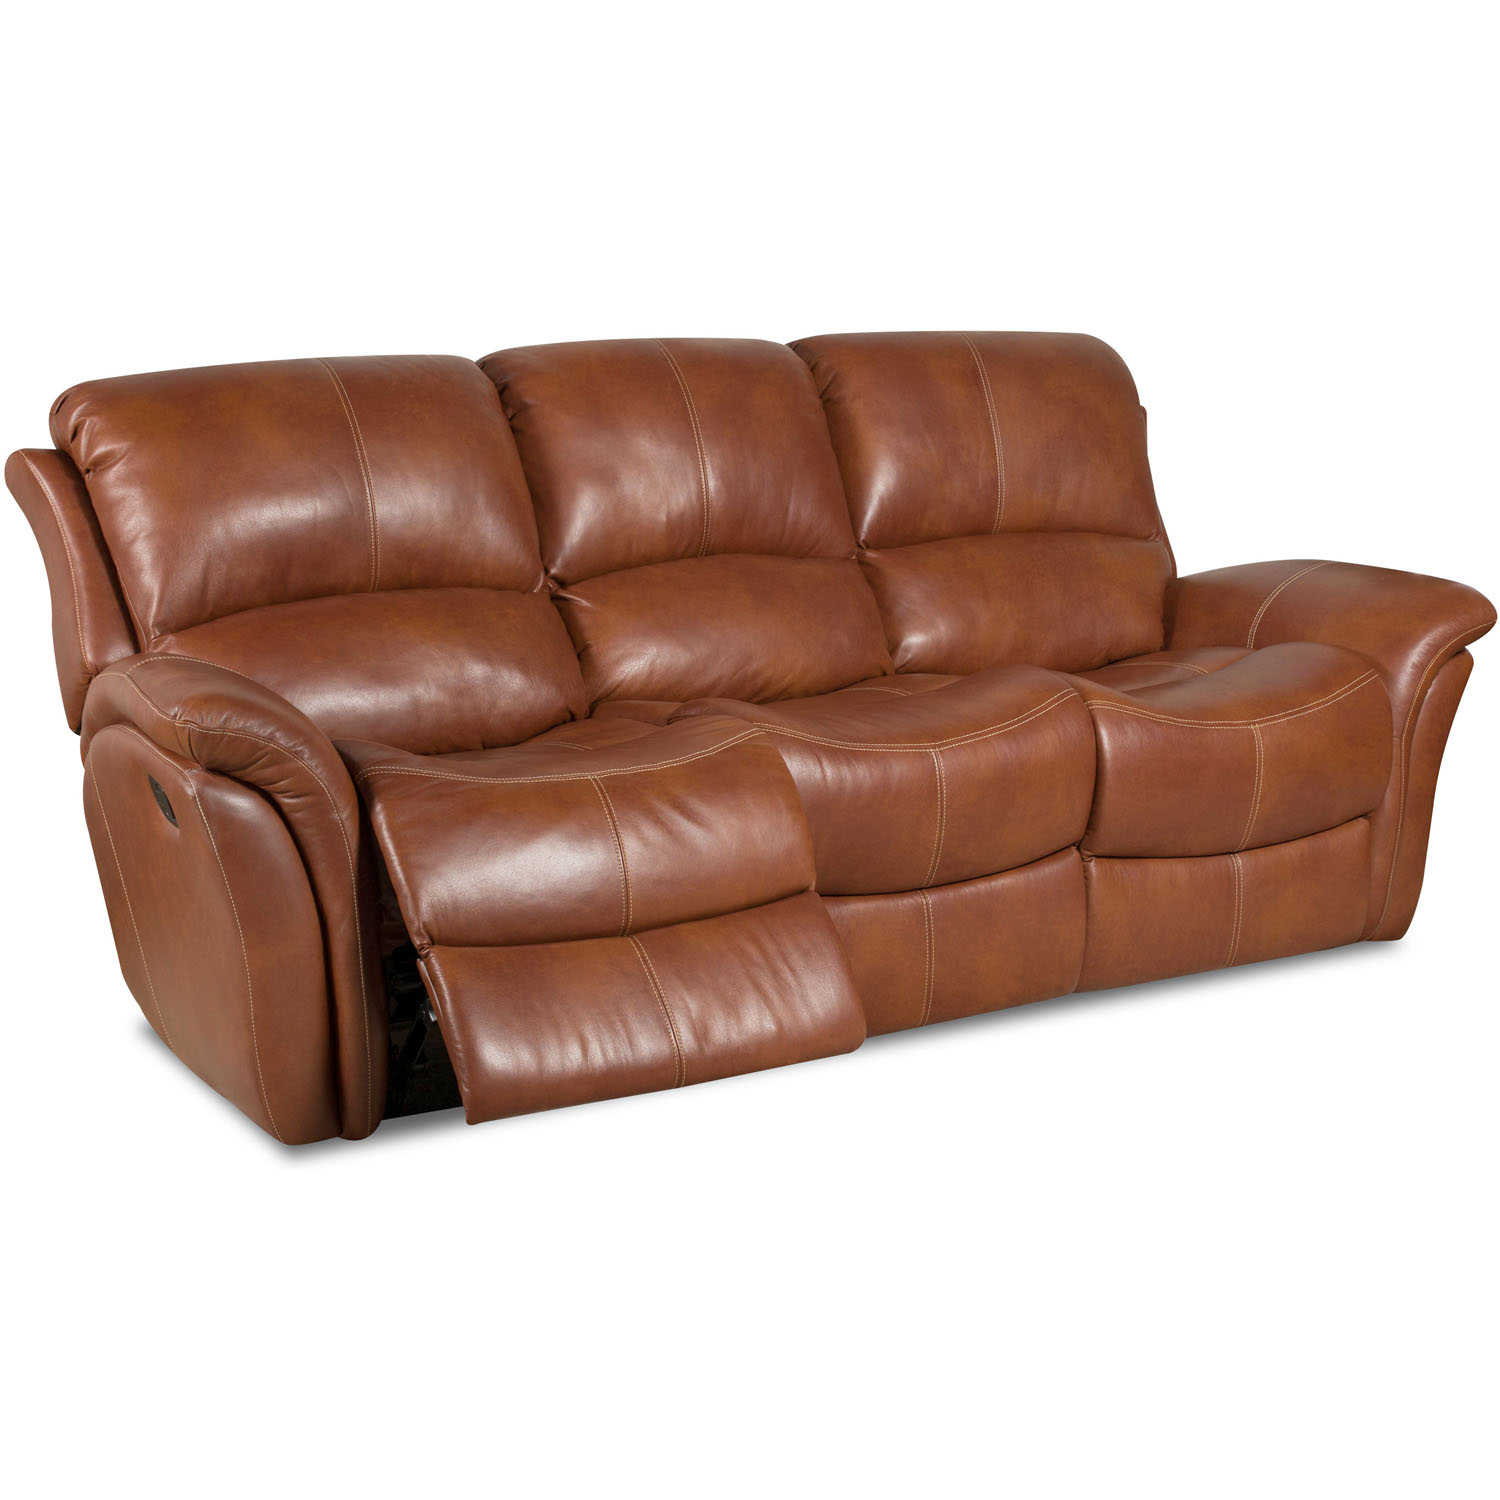 Cambridge Appalachia Leather Double Reclining Sofa in Old Gold